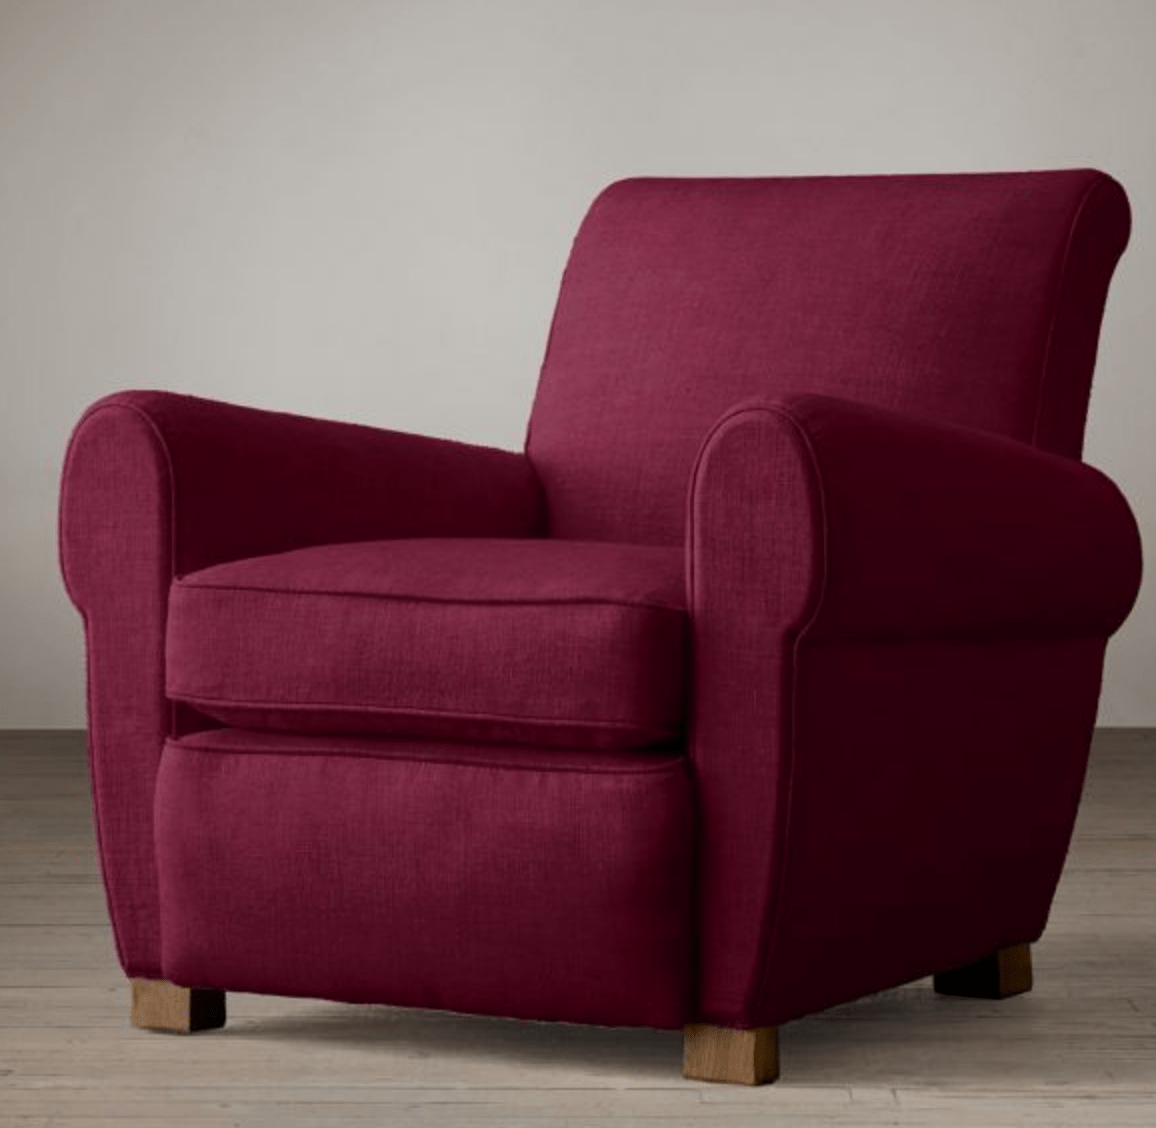 Best Rated Small Recliners 20 Small Recliners Perfect For Your Living Room Living Room